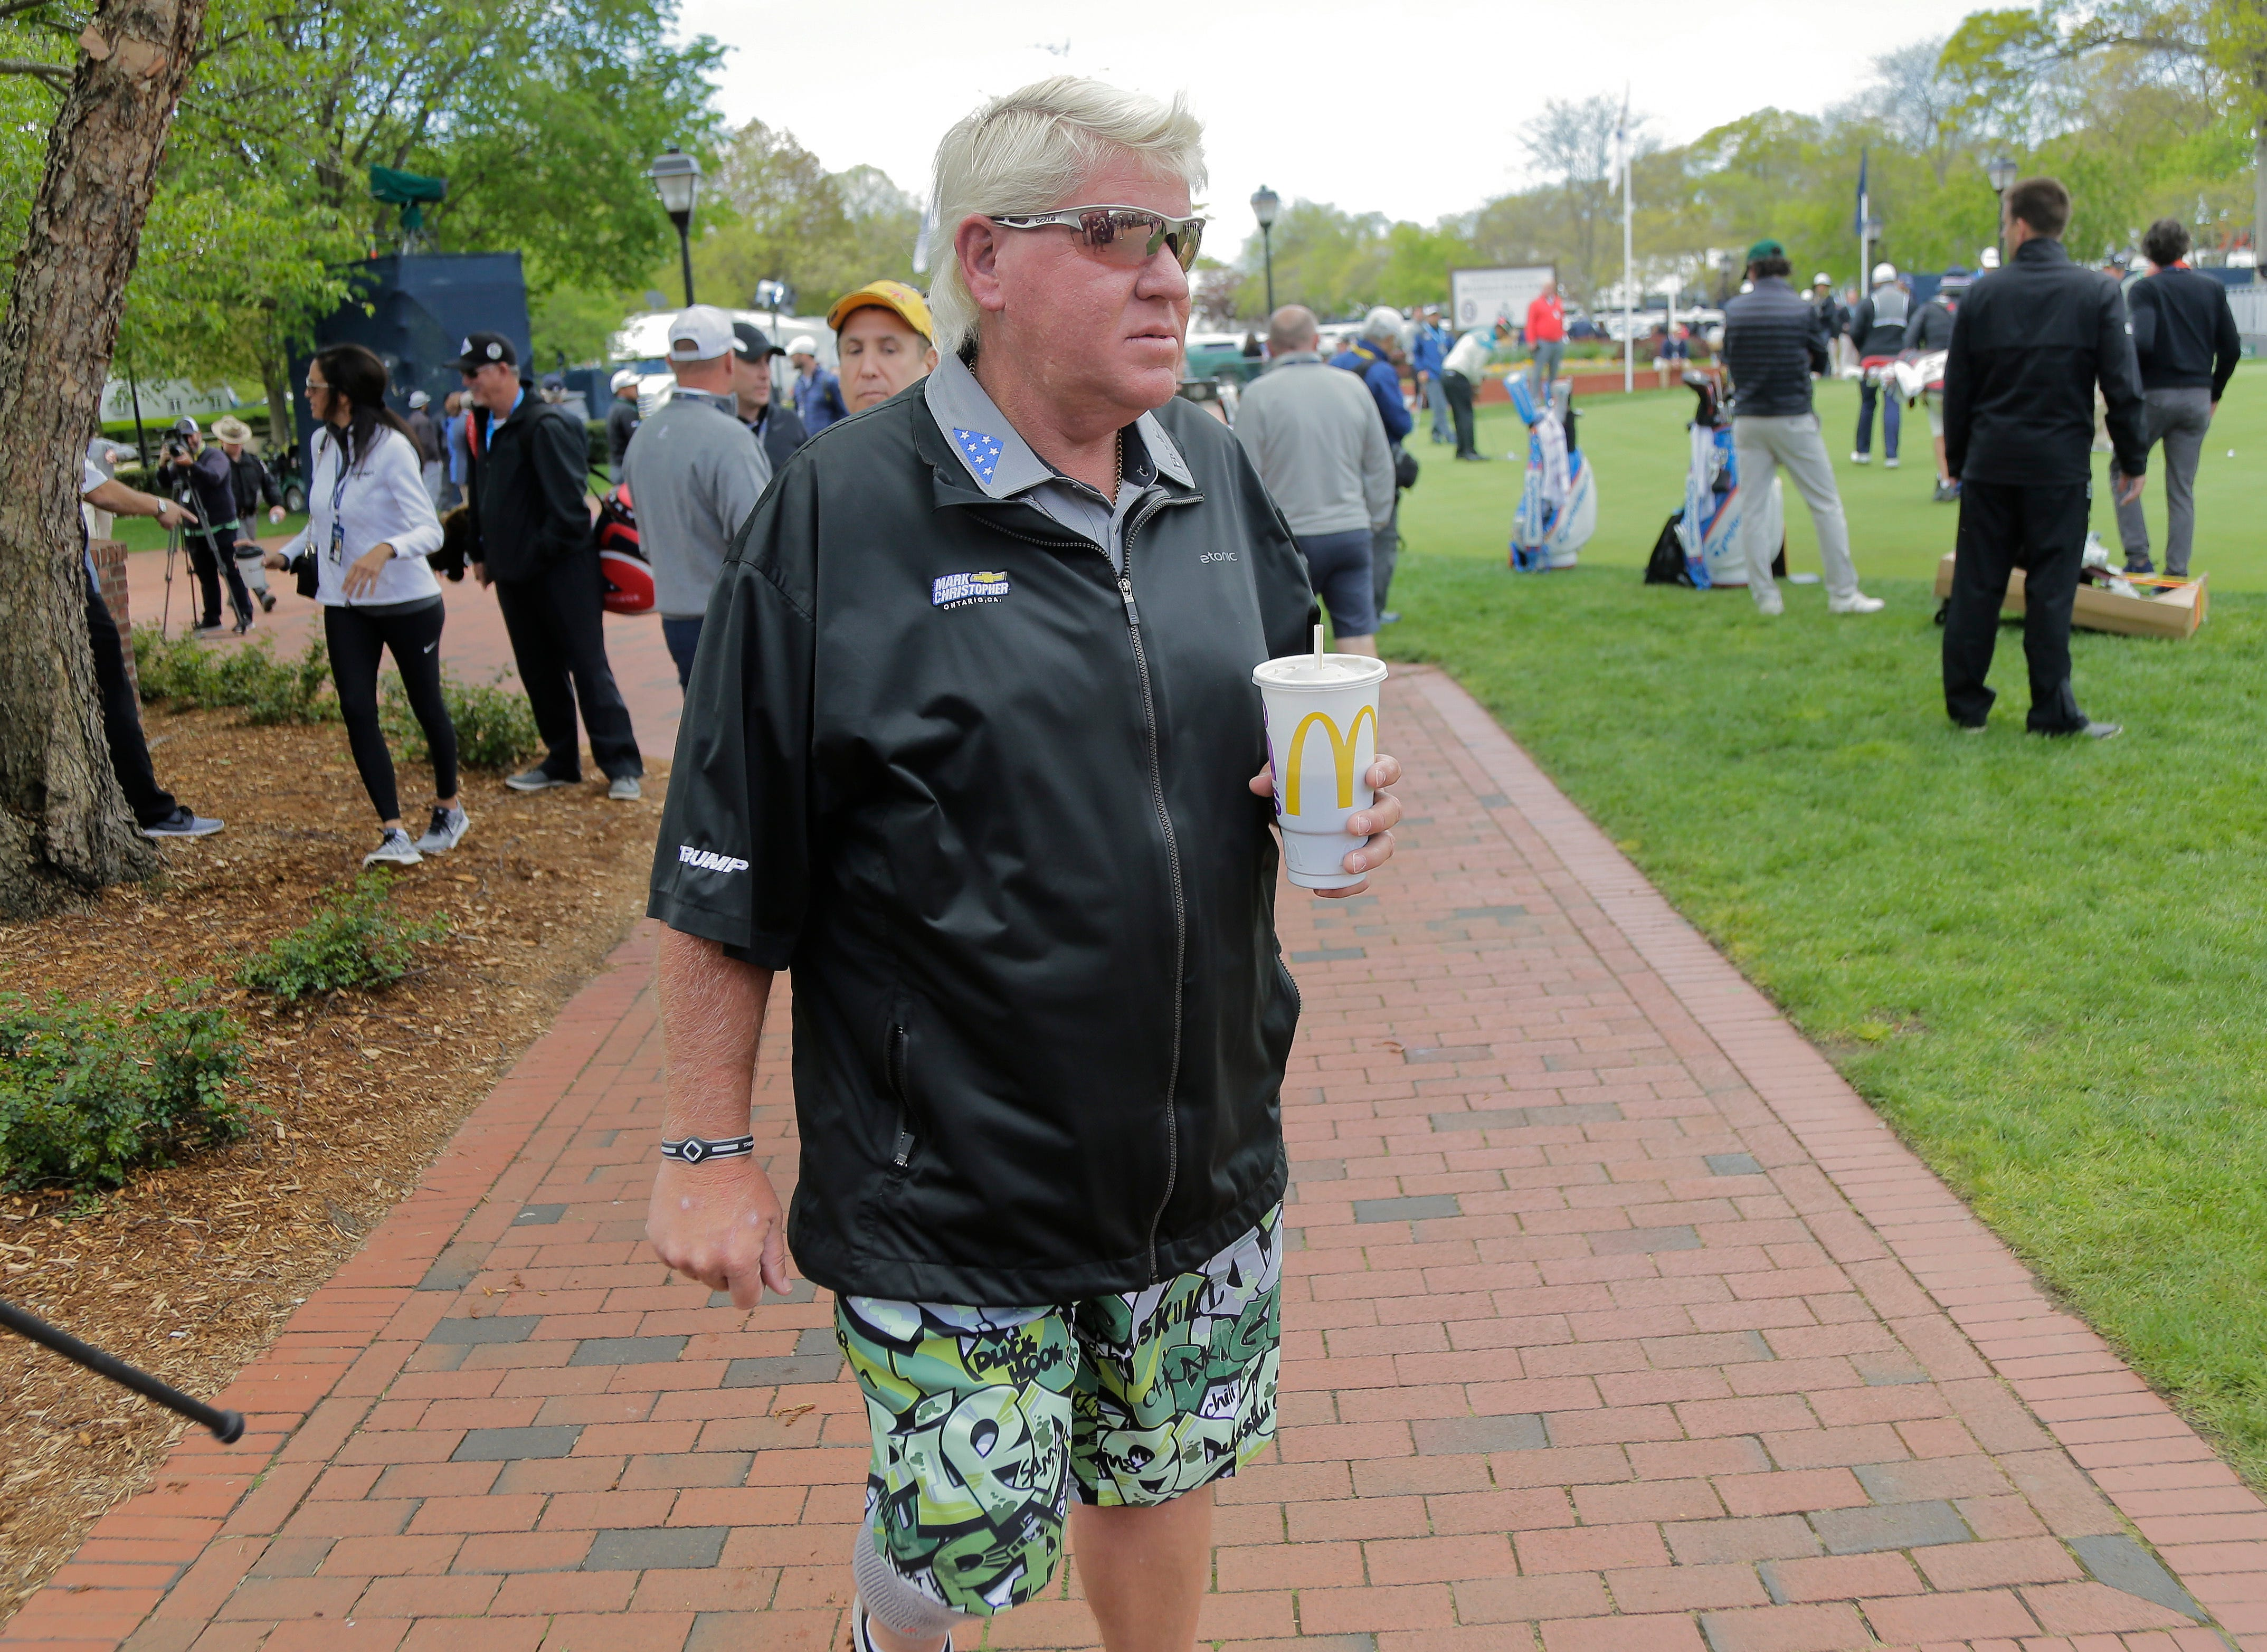 Cart ride ends: John Daly will miss the cut at PGA Championship